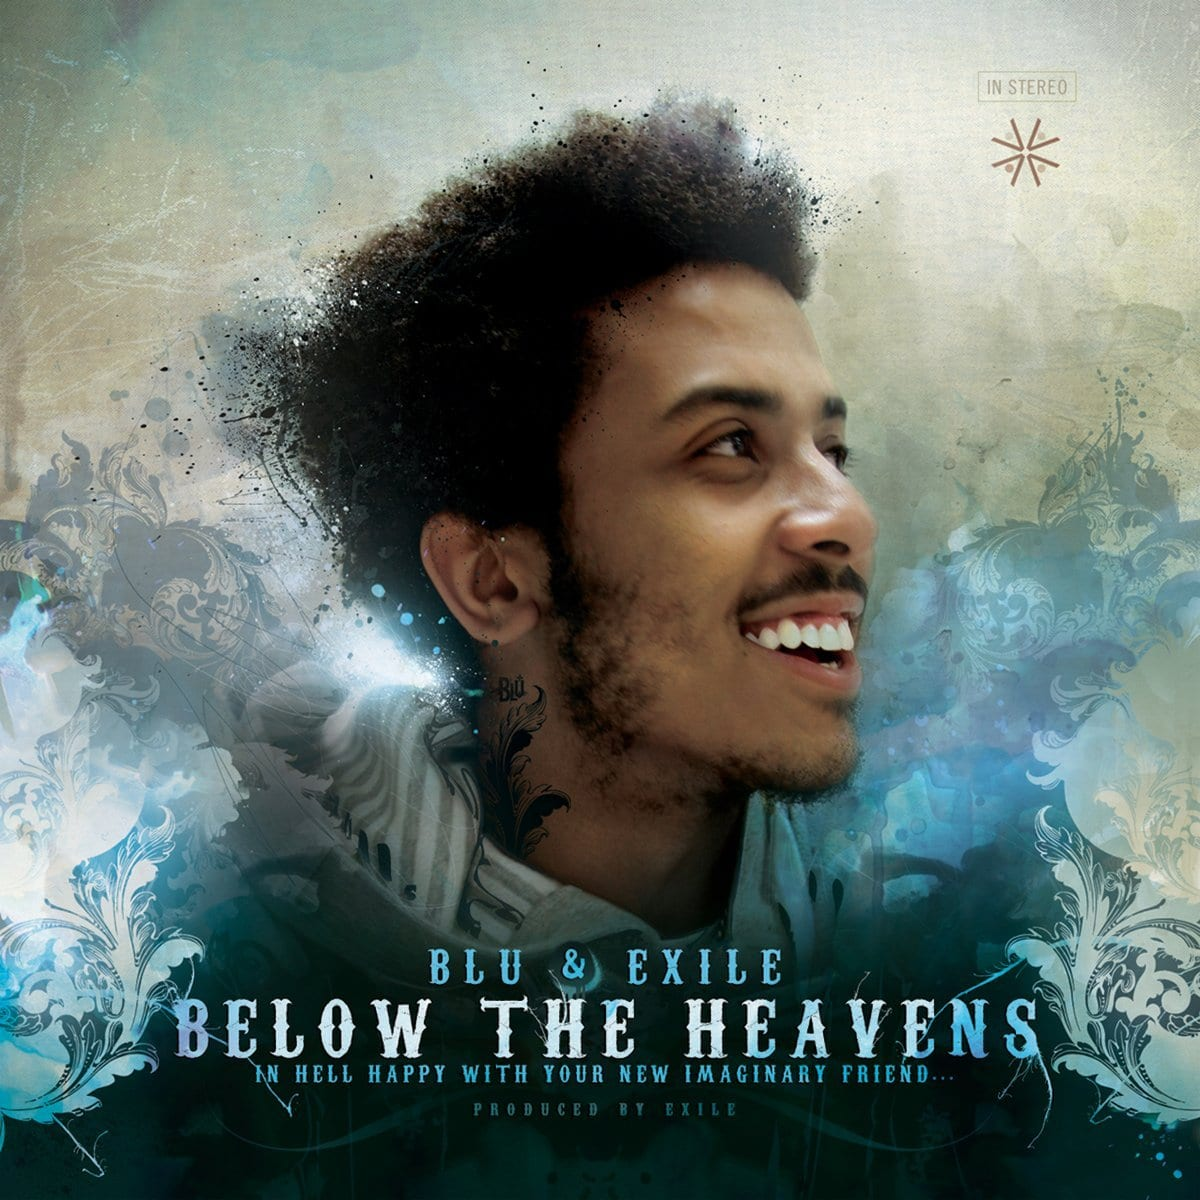 Blu & Exile - Below The Heavens (2XLP + 7'') (Vinyl) - Urban Vinyl | Records, Headphones, and more.